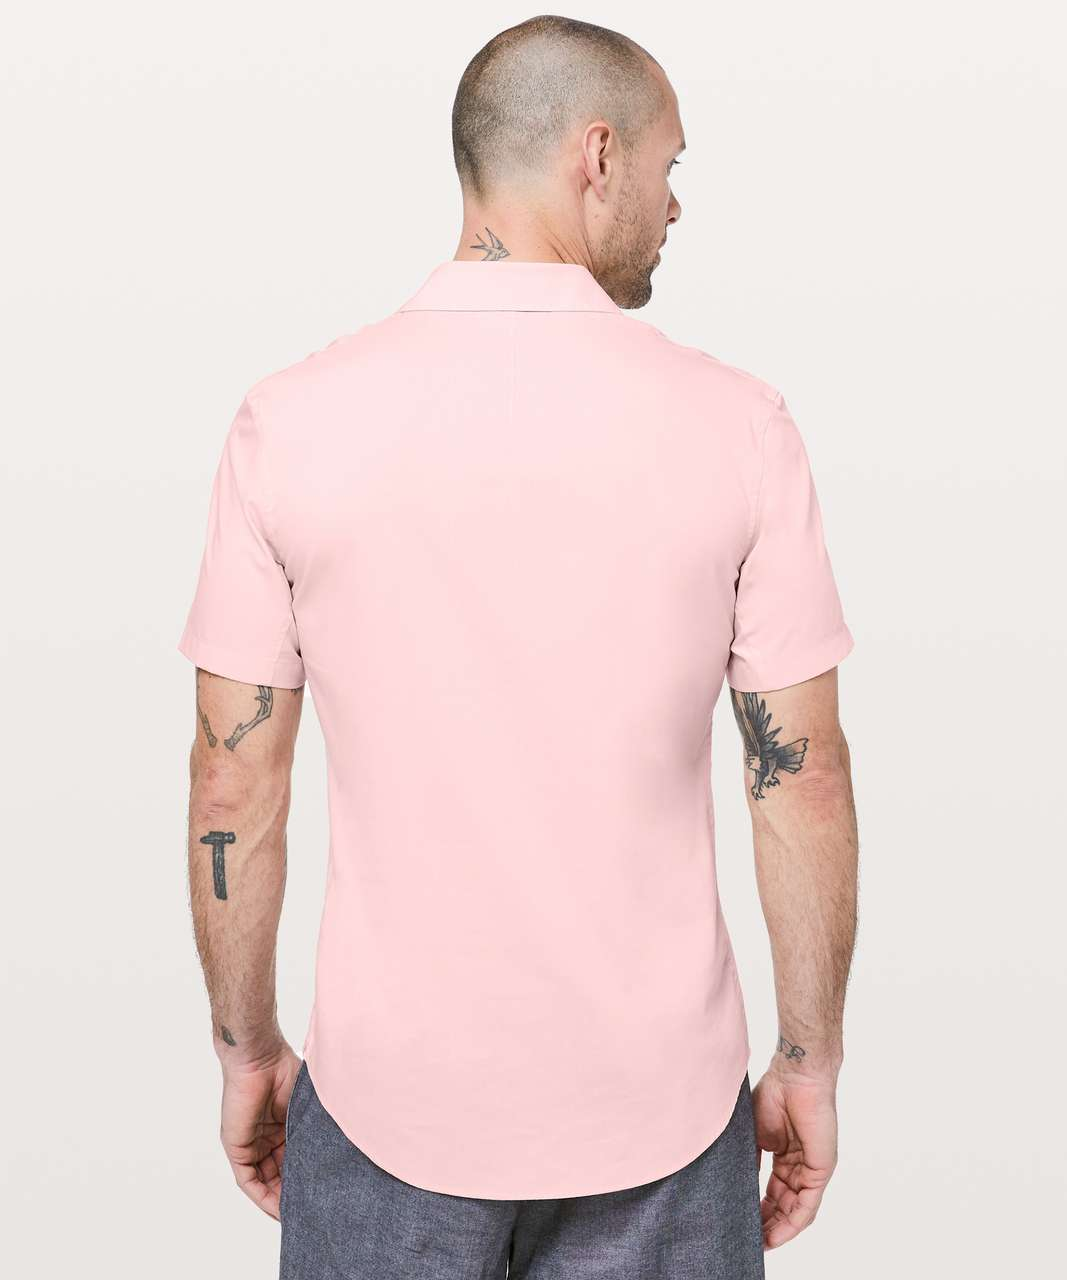 Lululemon Down To The Wire Short Sleeve Shirt - Seashell